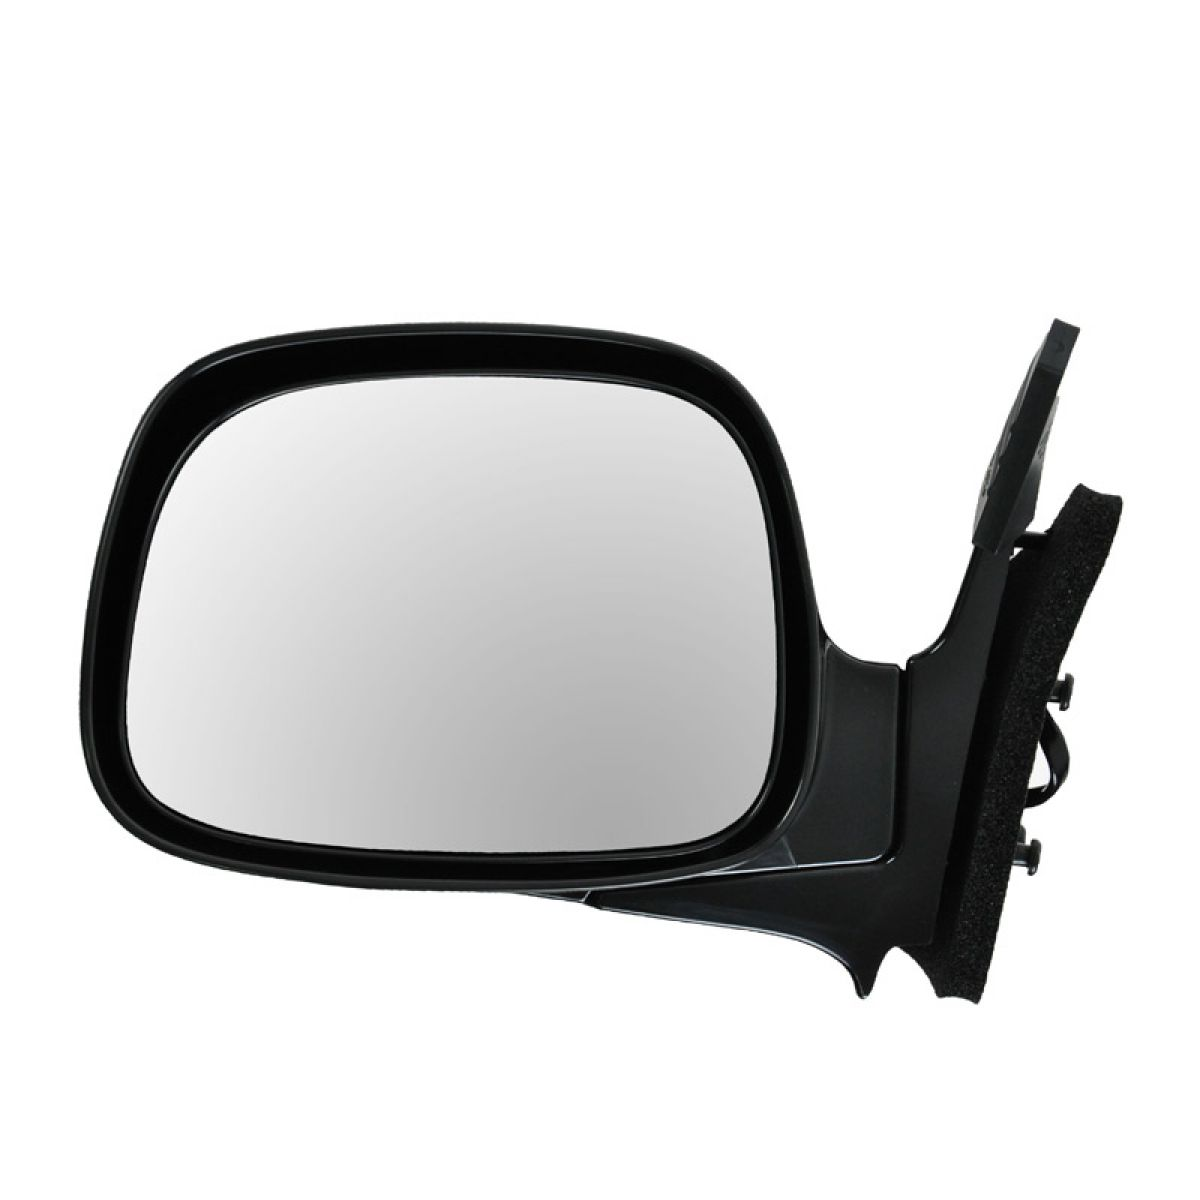 Folding Power Heated Side View Mirror Driver Left LH for 02-07 Buick Rendezvous